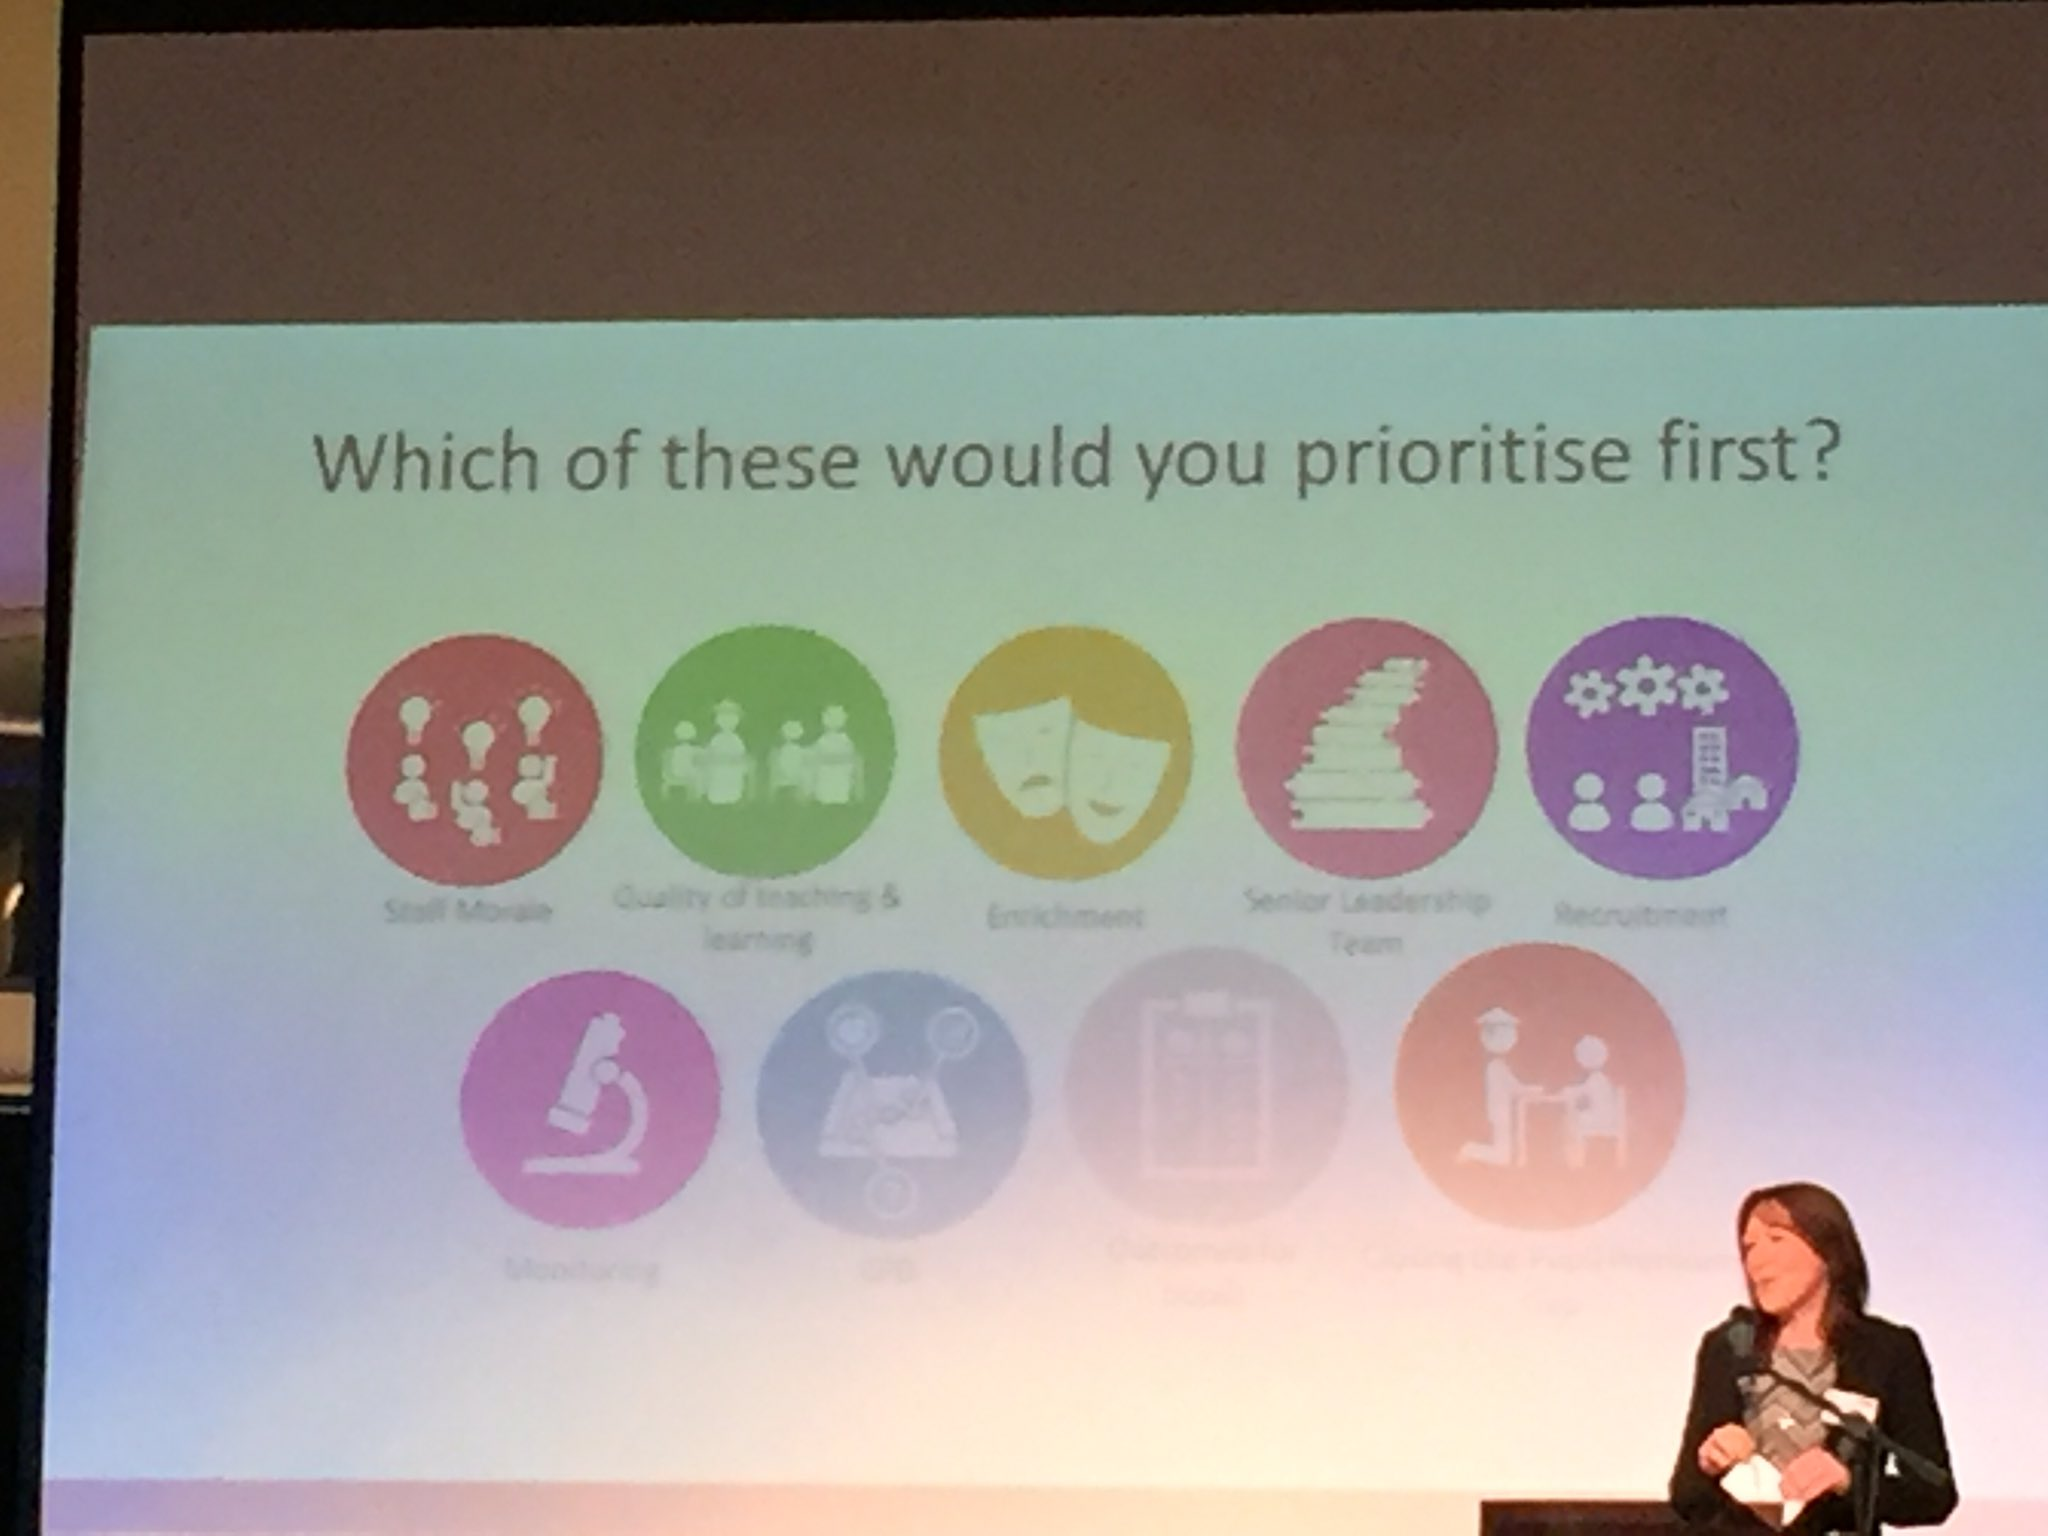 Good start to the morning at #Teach2017. Starting Q from Lorraine Clarke - Which would you prioritise first when moving a school out of SM? https://t.co/JtSjpyl1uH